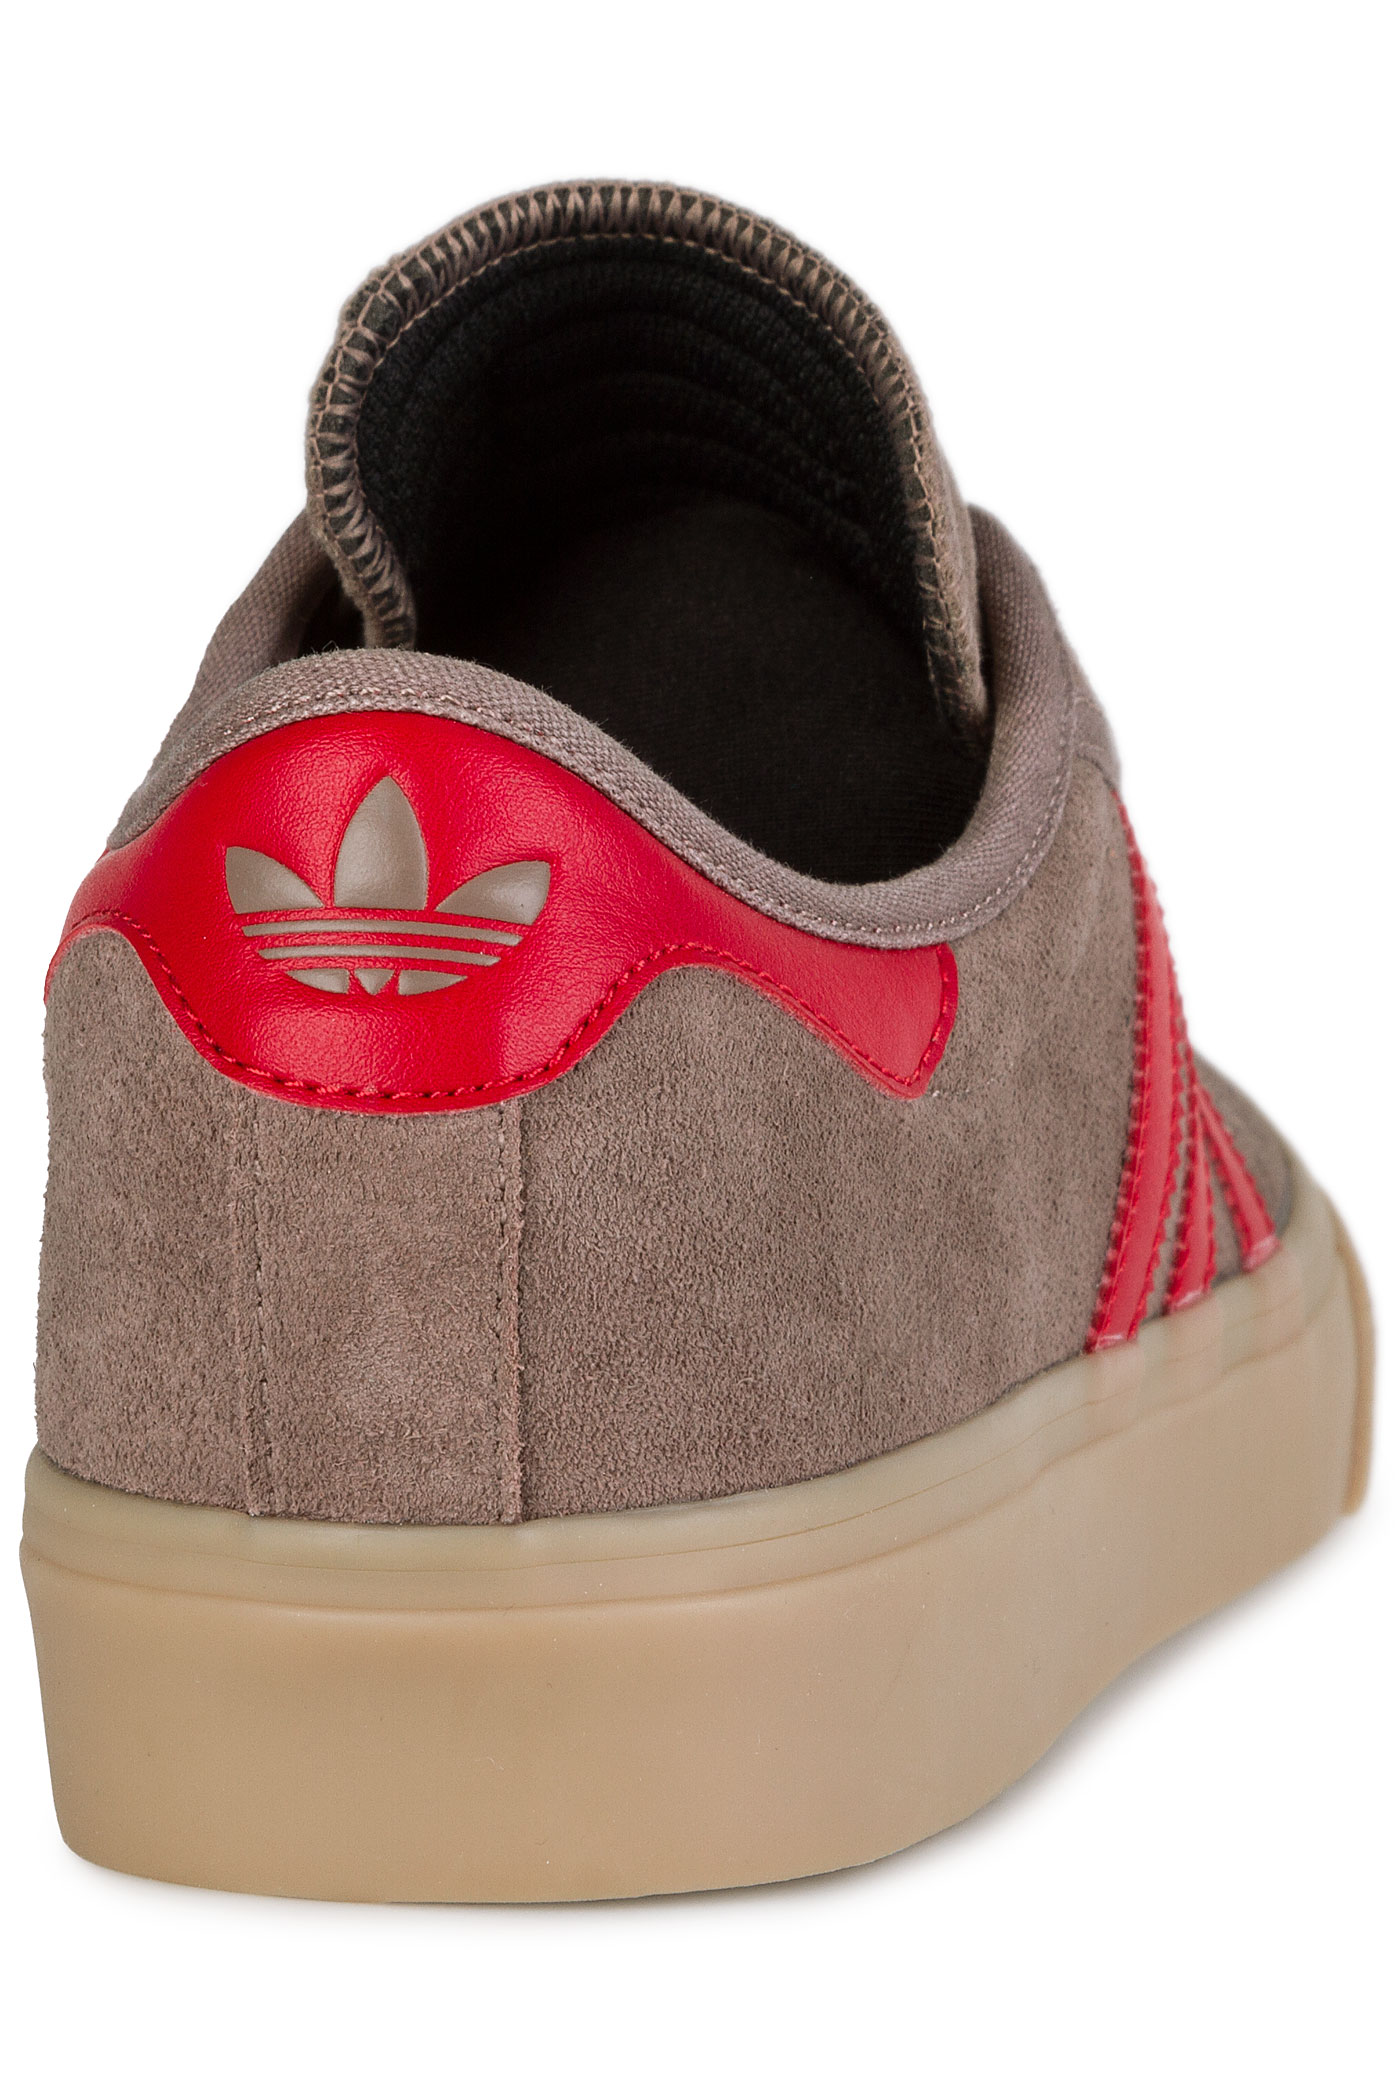 quality design 8c650 9d5c9 ... adidas Adi Ease Premiere ADV Shoes (trace brown scarlet gum)